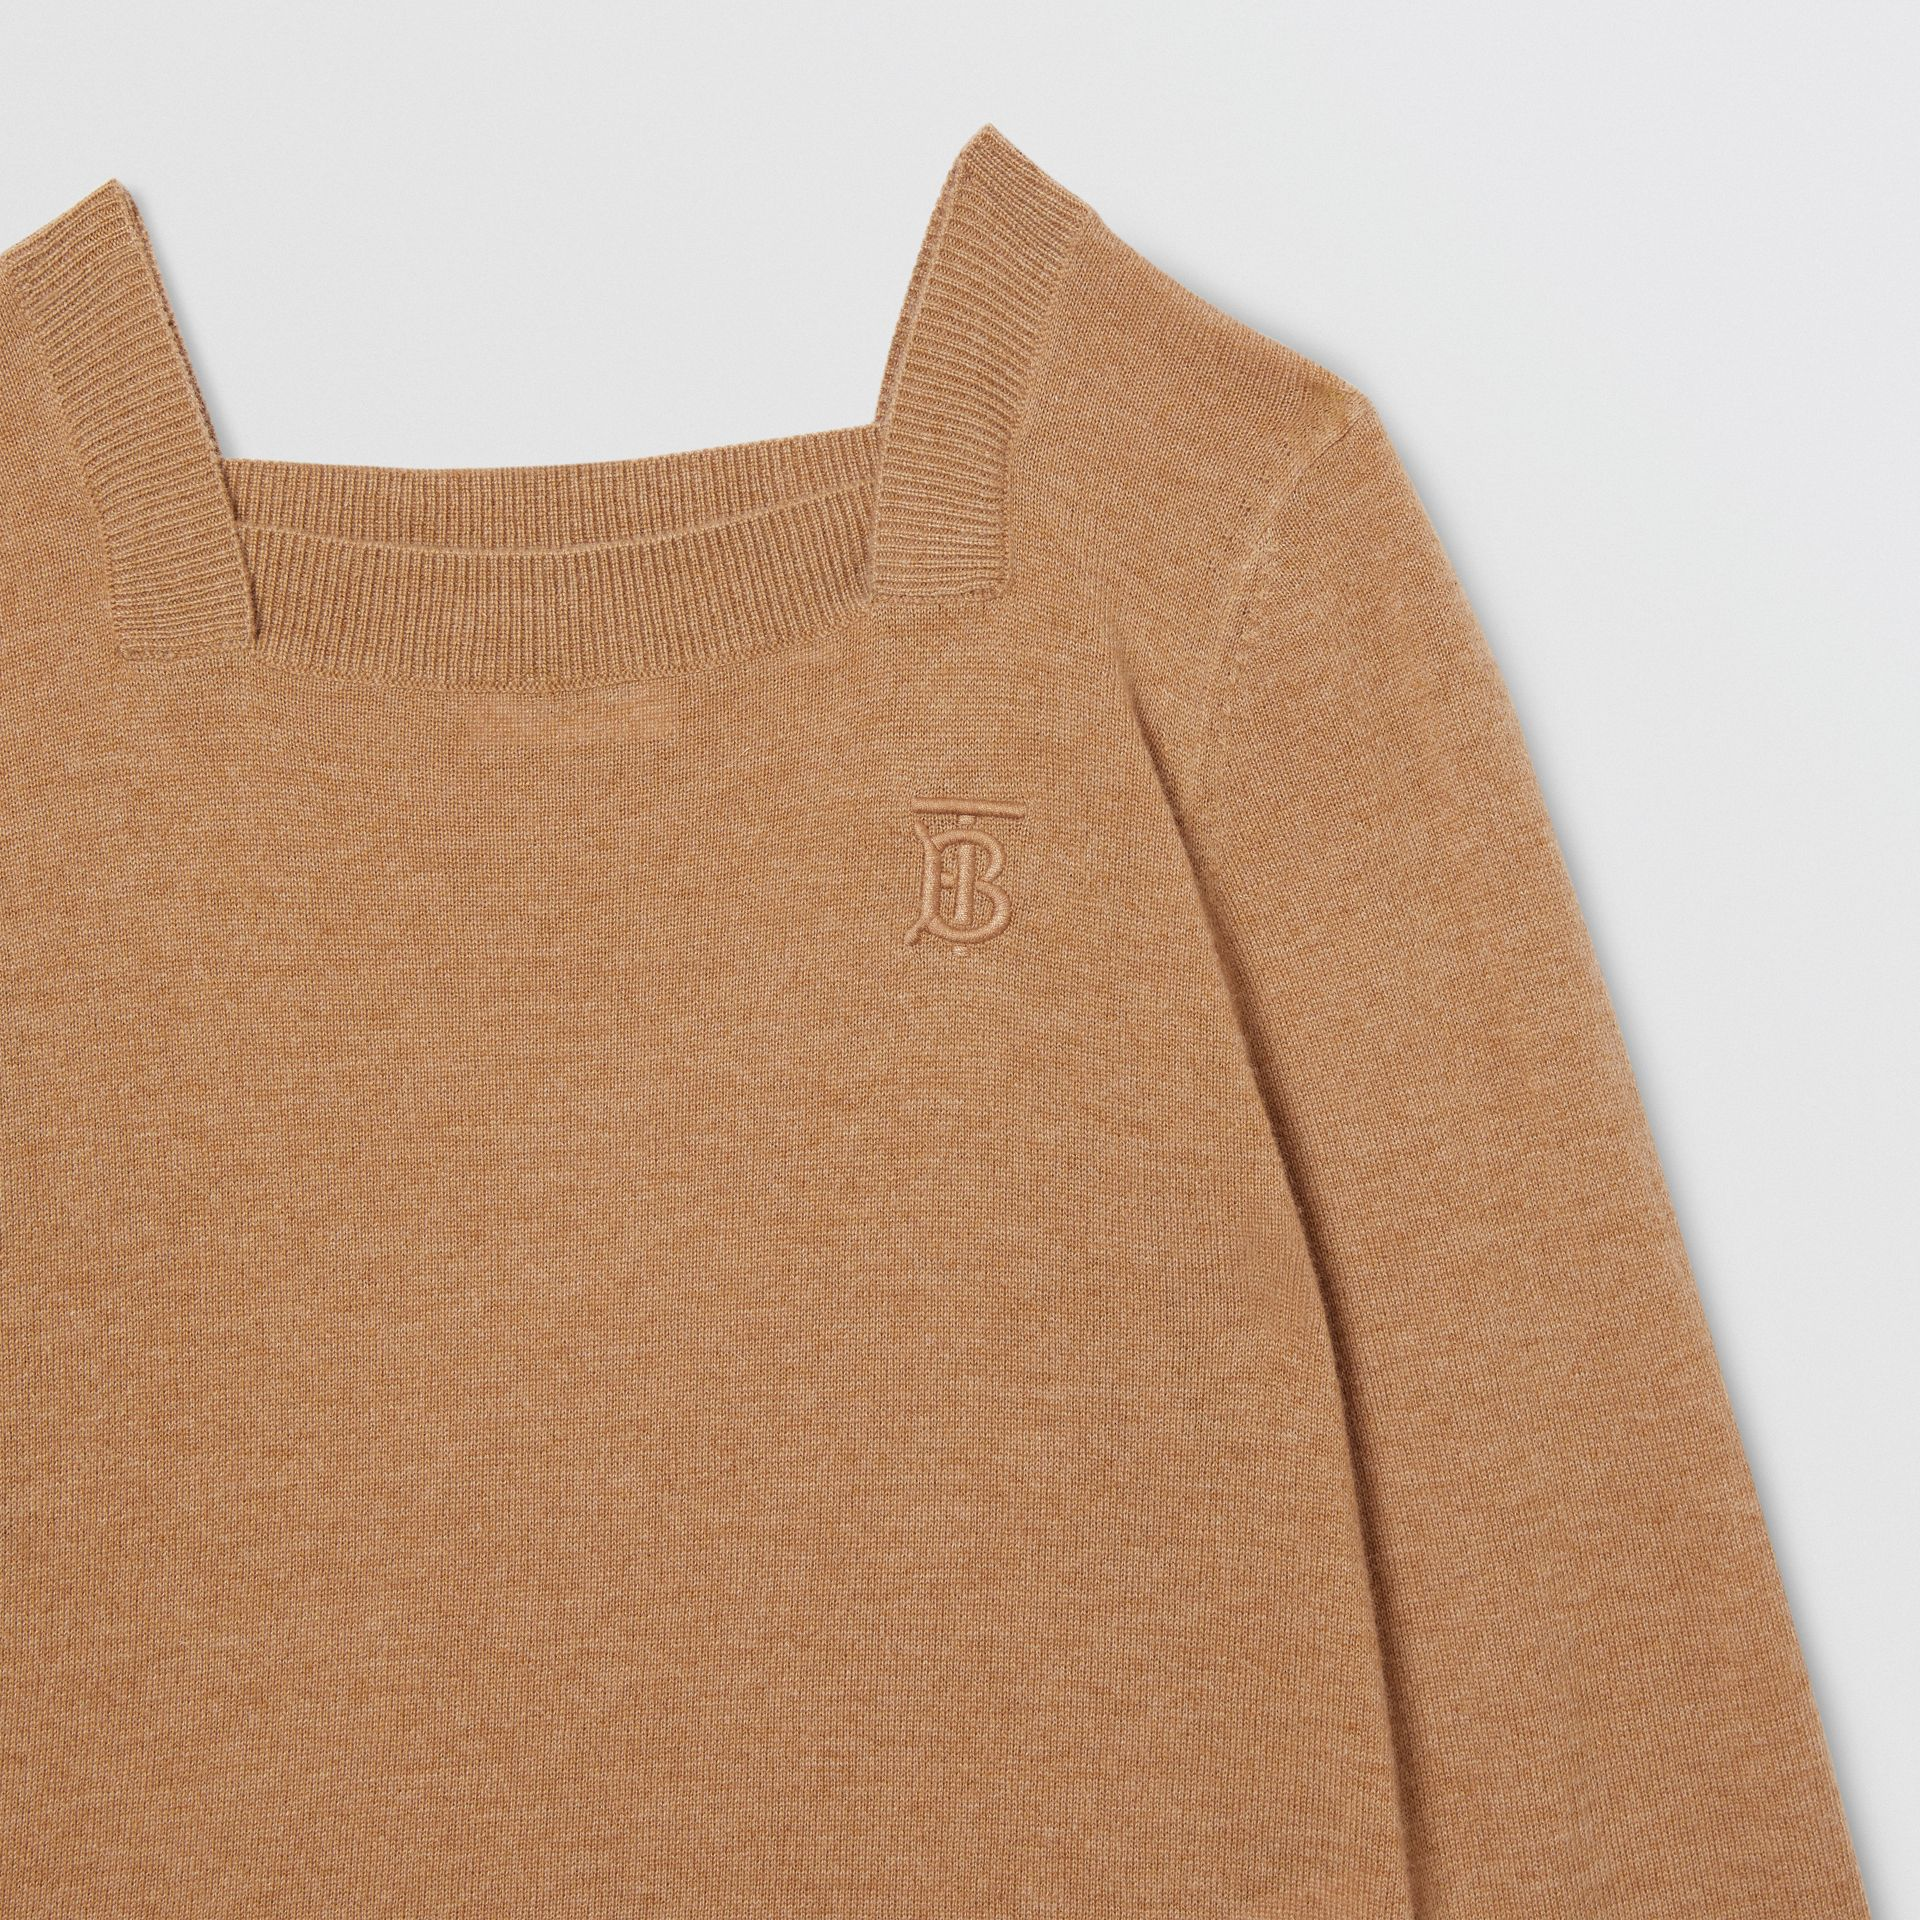 Monogram Motif Cashmere Sweater in Camel | Burberry - gallery image 5